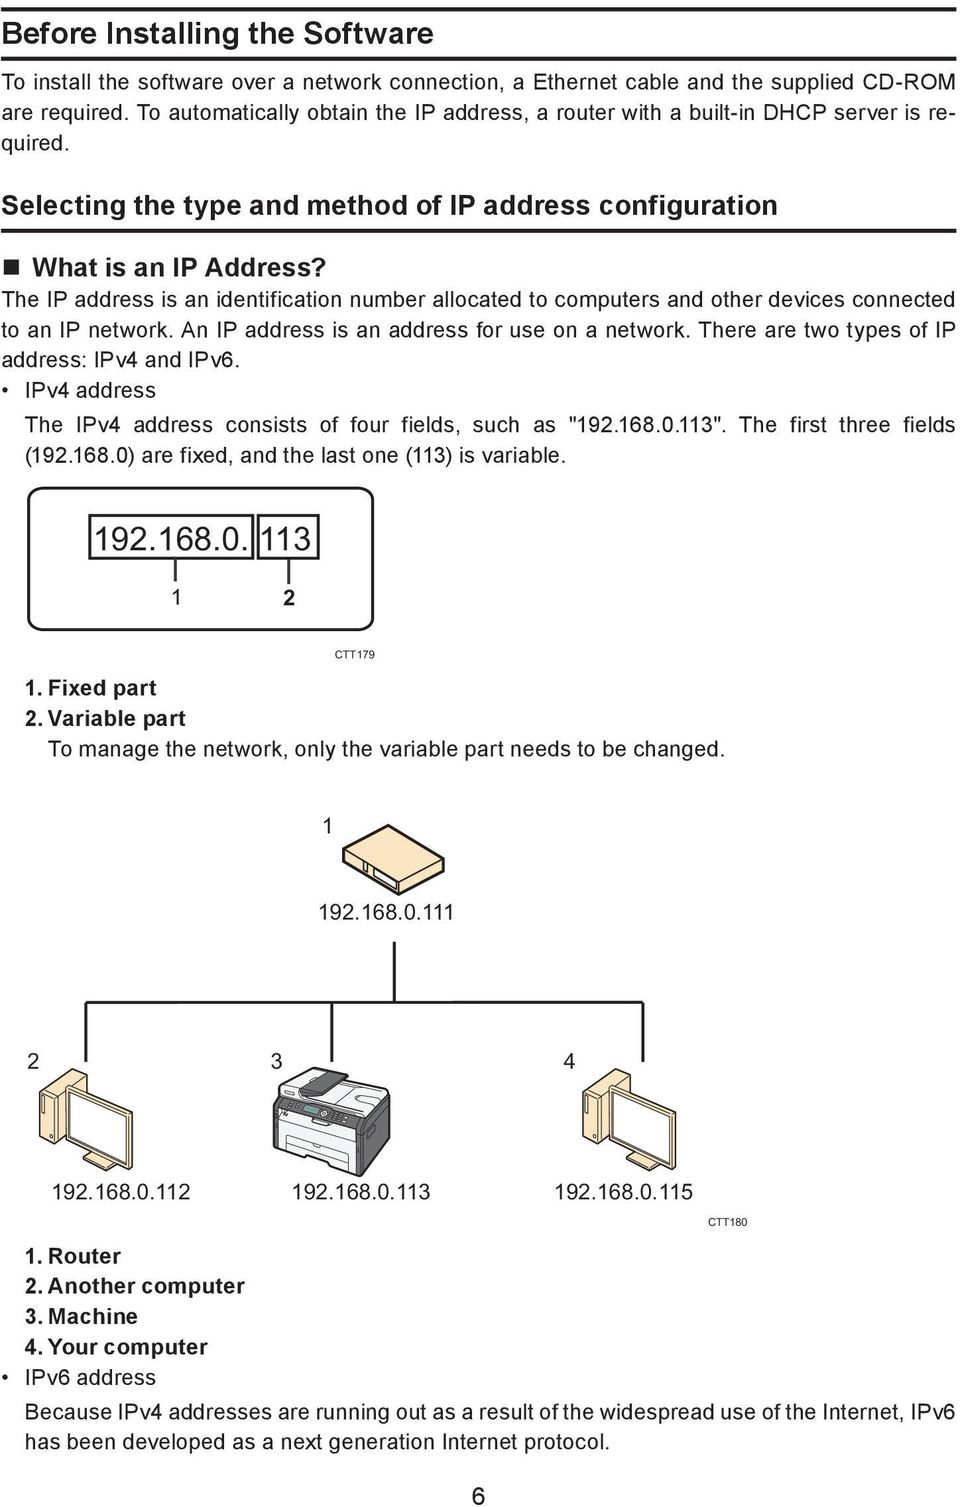 The IP address is an identification number allocated to computers and other devices connected to an IP network. An IP address is an address for use on a network.